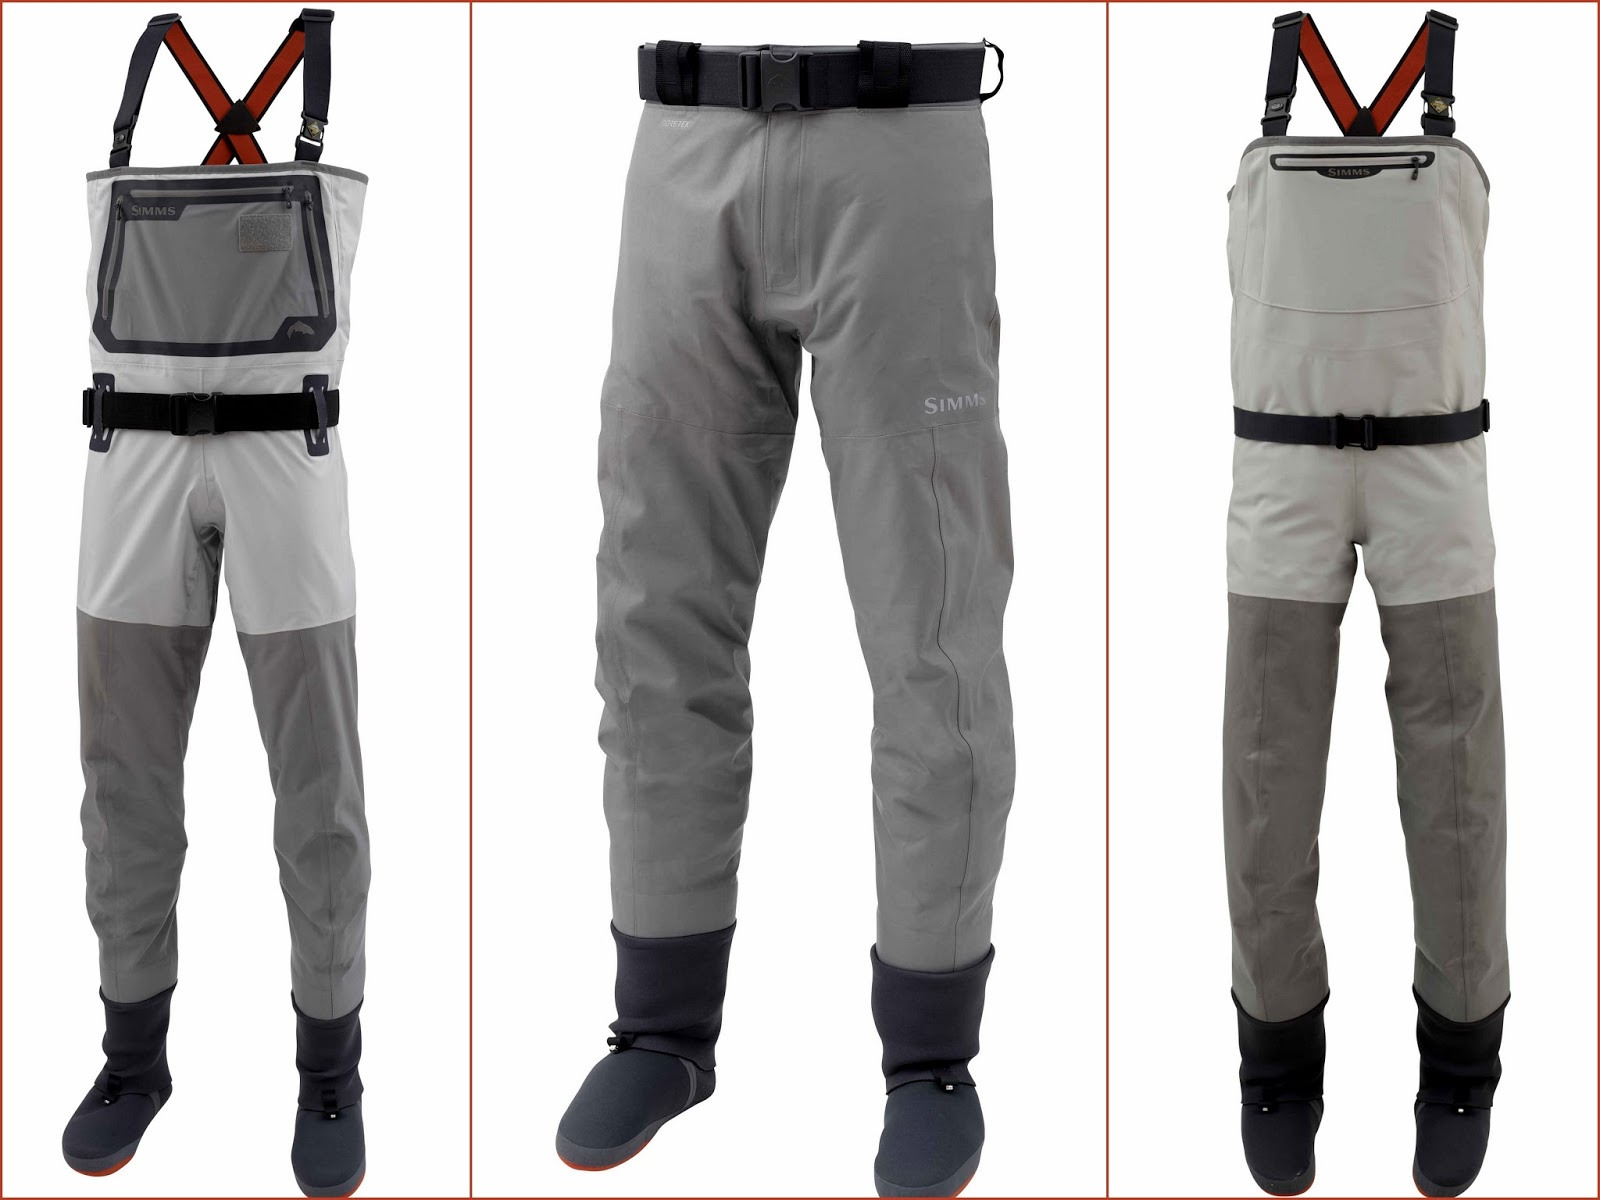 Gorge fly shop blog new for 2018 simms g3 waders and for Simms fishing waders